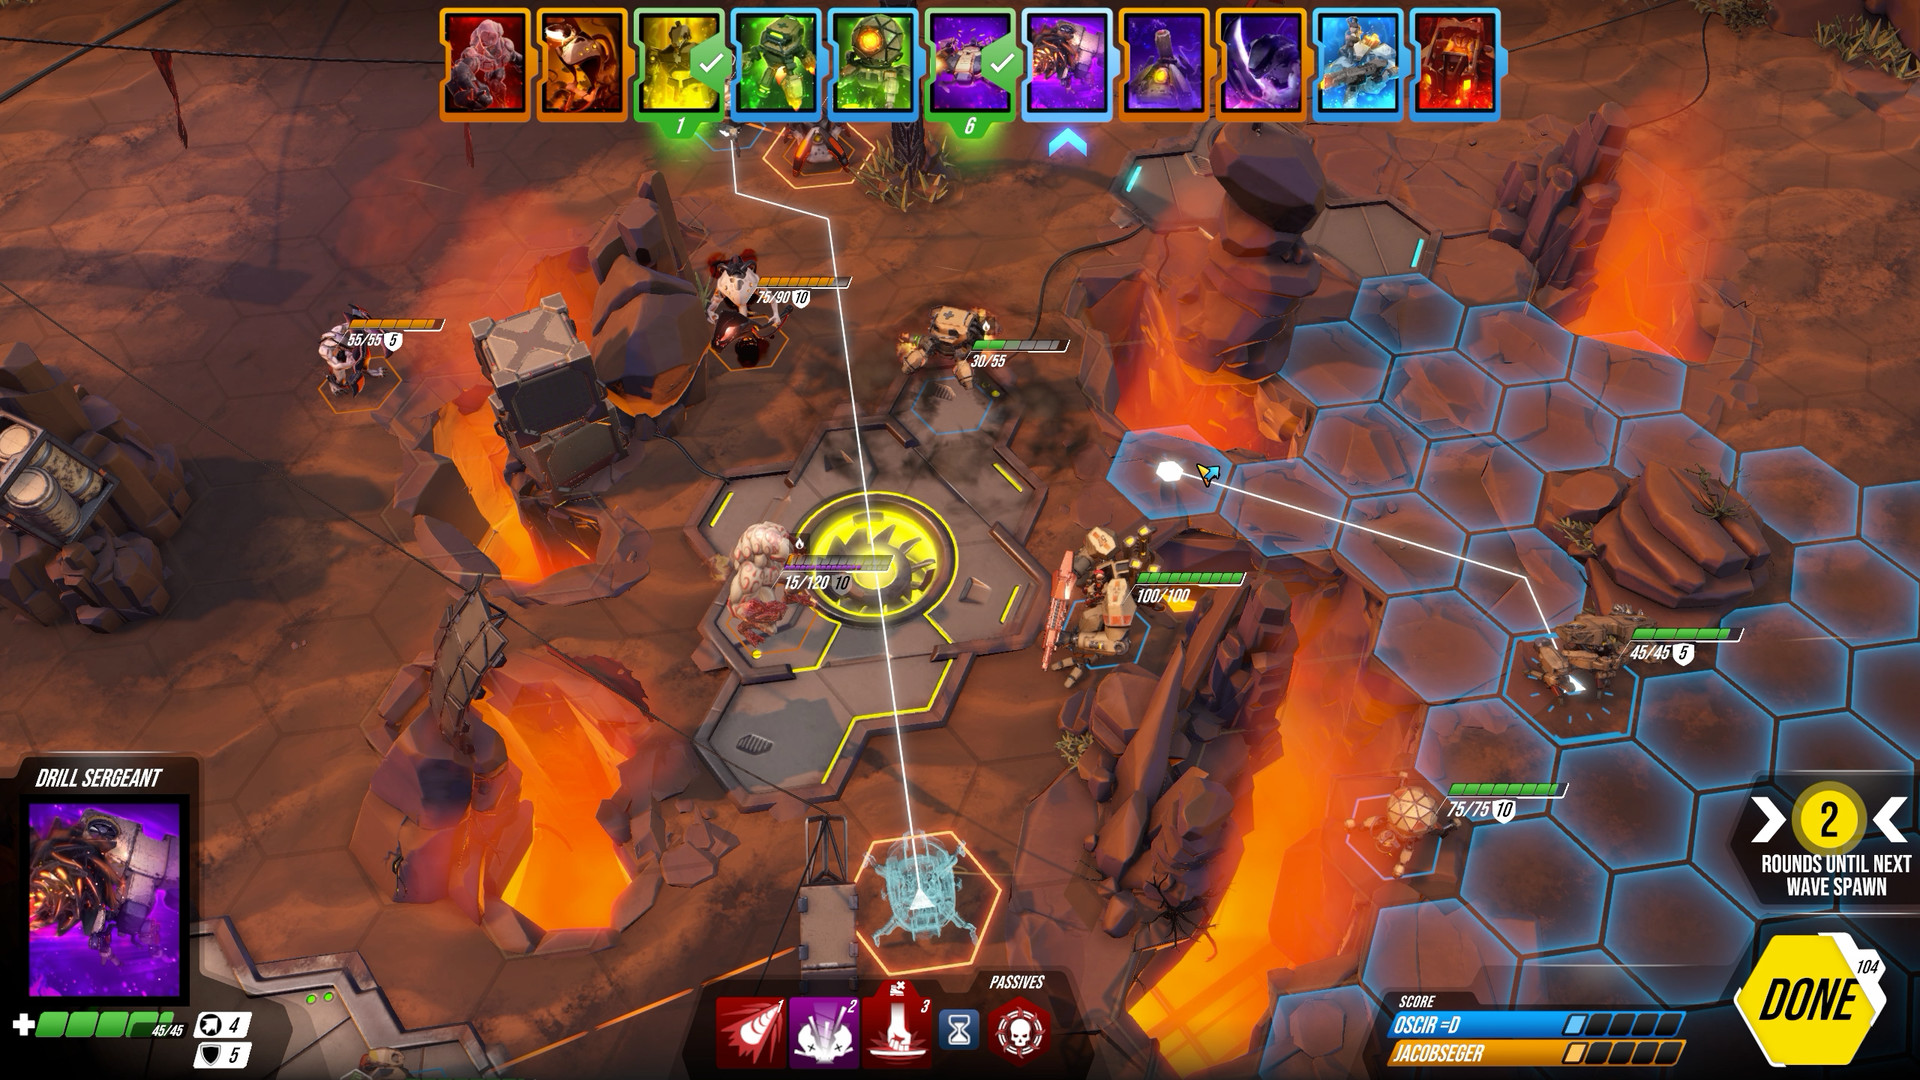 Online turn-based strategy game Batalj out on PC